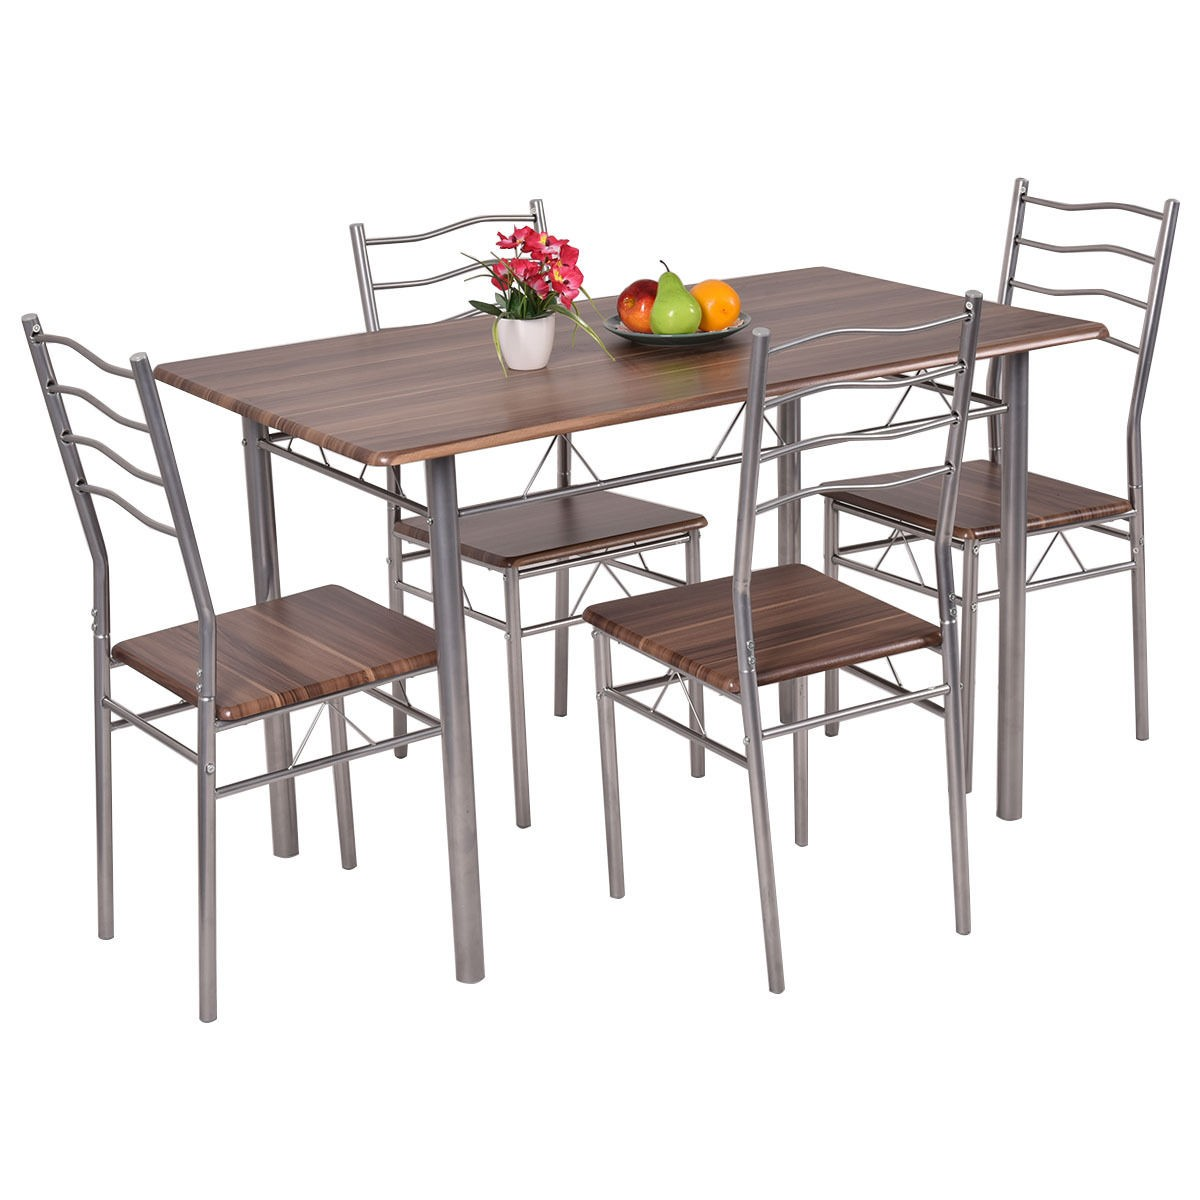 5 Piece Dining Set Wood Metal Table And 4 Chairs Kitchen Modern Furniture US